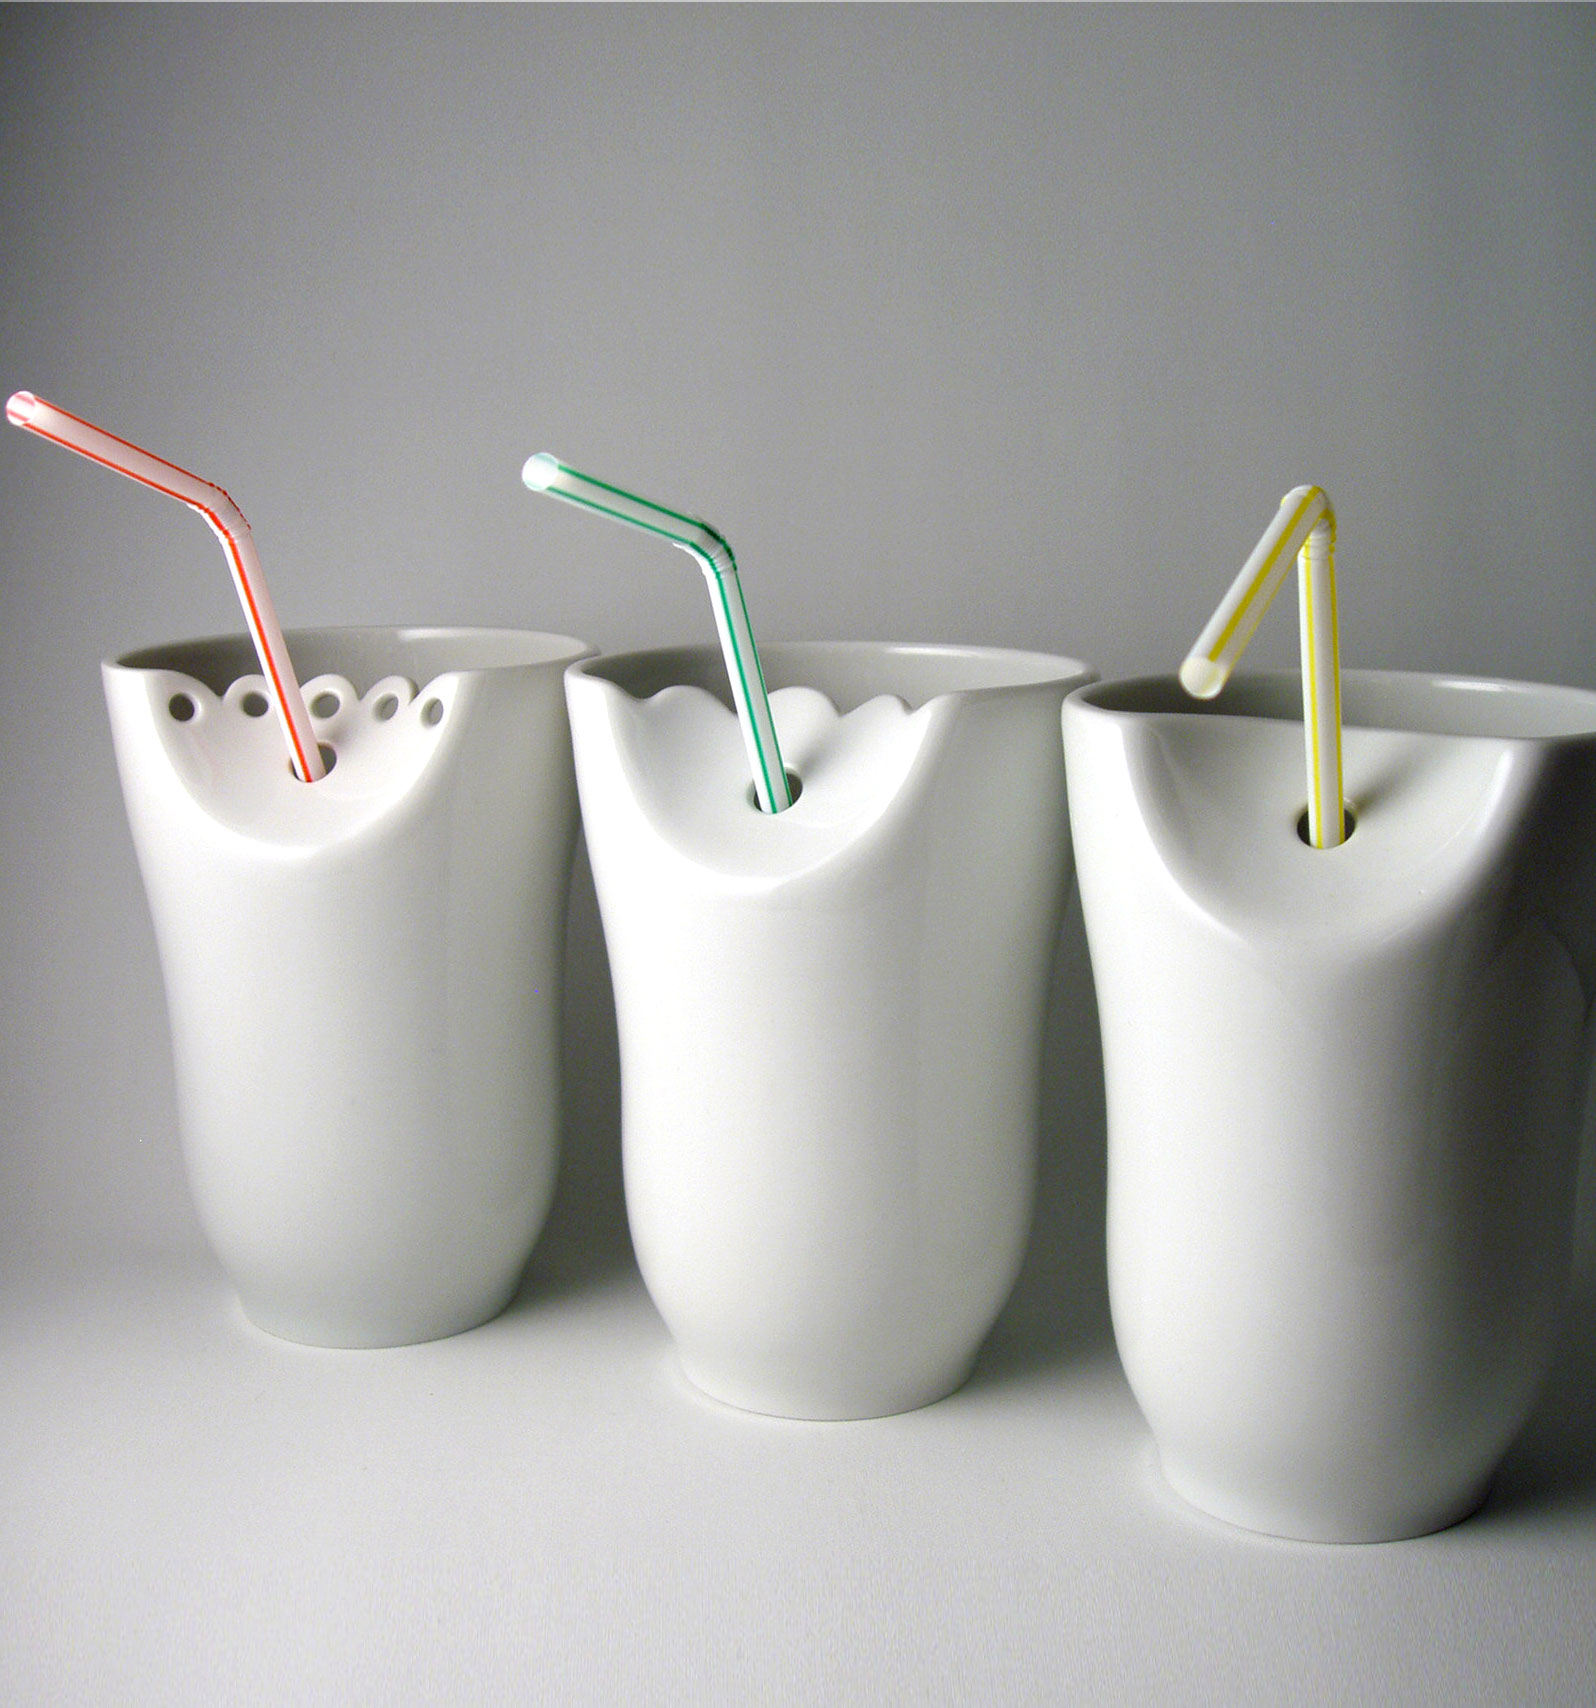 awesome-design-ideas-Handmade-Porcelain-Cups-Sarka-Schmelzerova-4